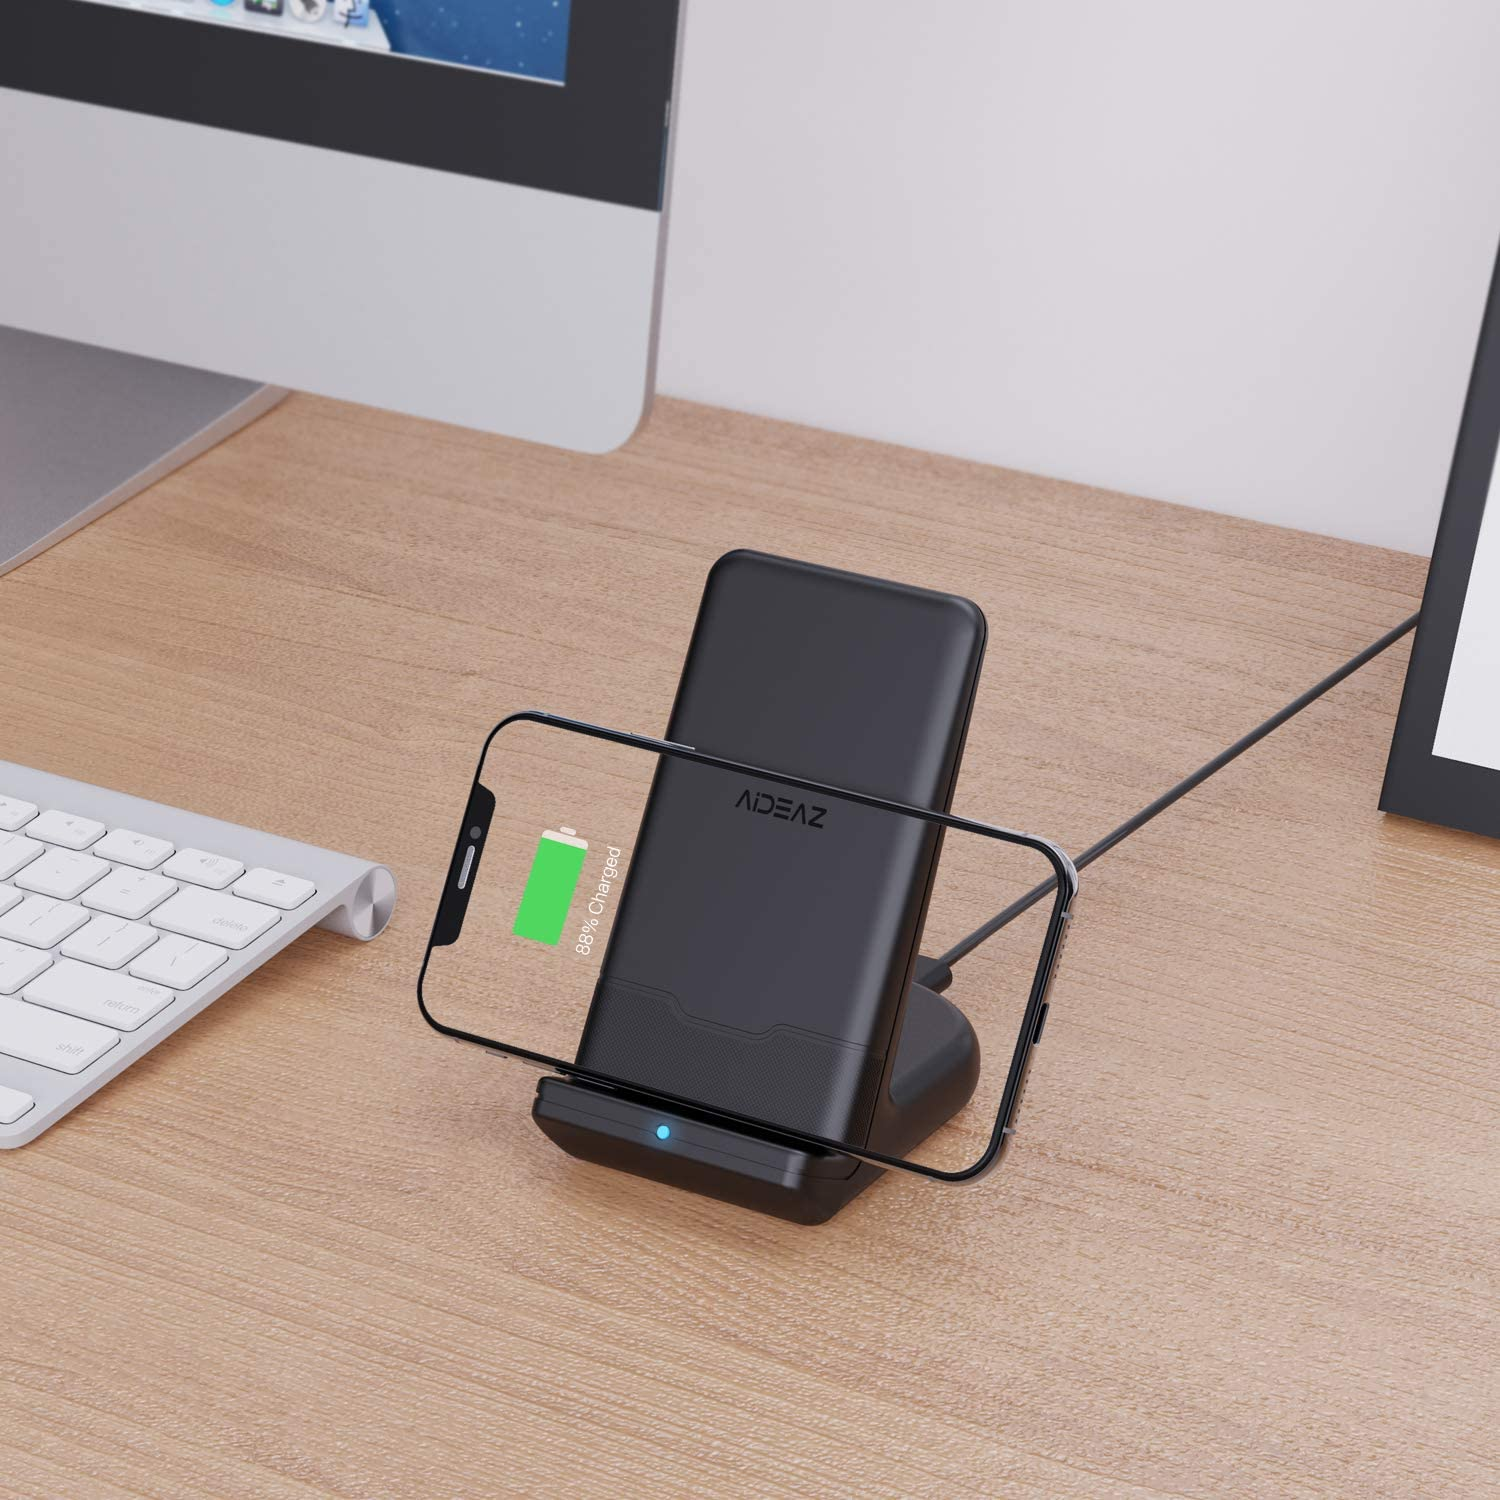 AIDEAZ Wireless Charger Qi Wireless Charging Stand Includes AC Adapter 10W for Galaxy S20//S10//S9//Note 10//Note 9 5W for Other Qi Phones Compatible with iPhone 11//11 Pro Max//XS Max//XR//XS//X//8//Plus//8